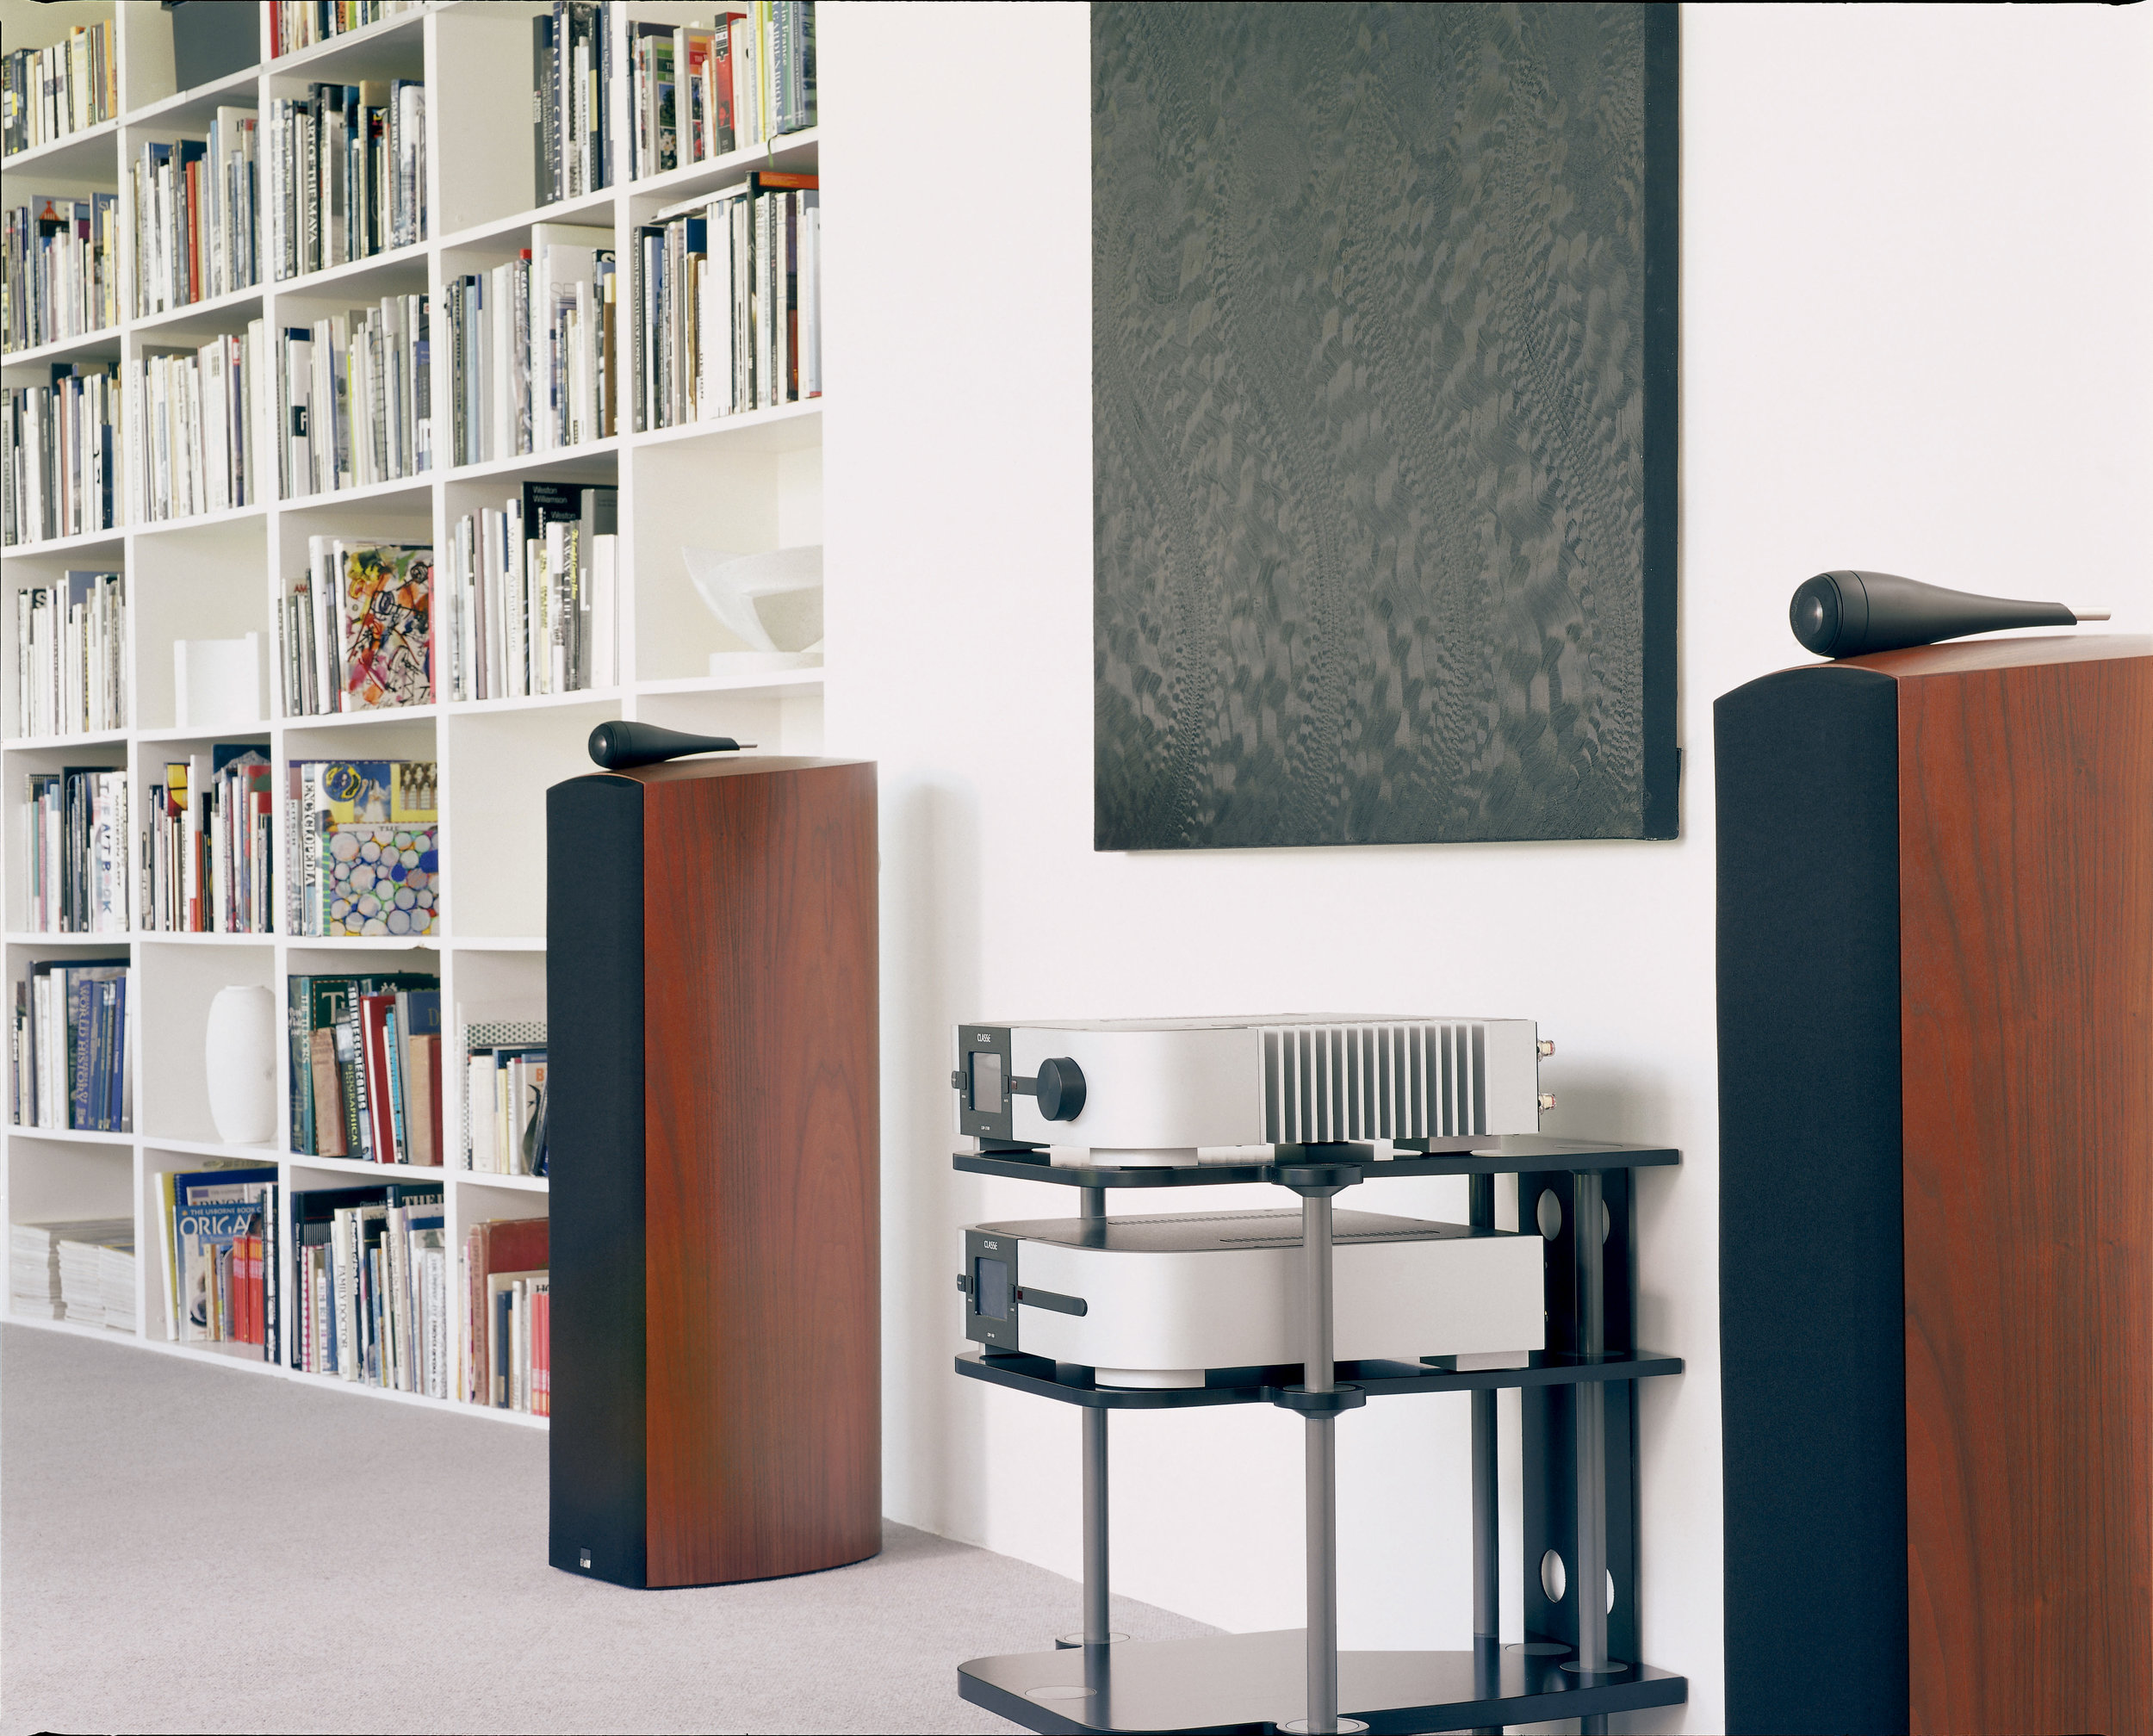 high res music room image uncropped.jpg